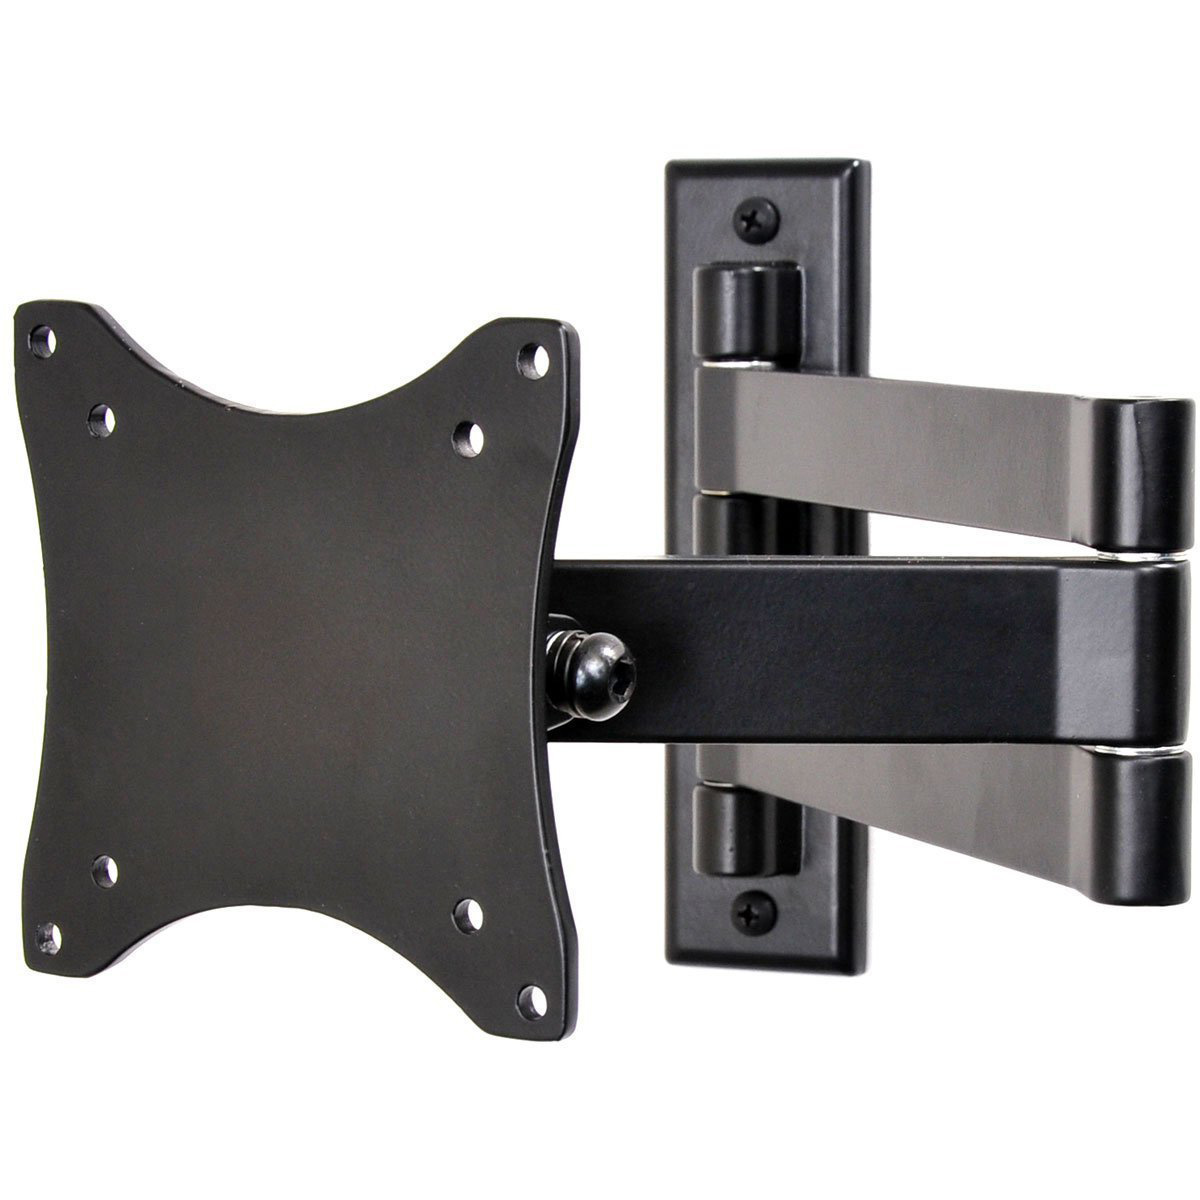 full motion flat screen tv wall mount bracket for sanyo